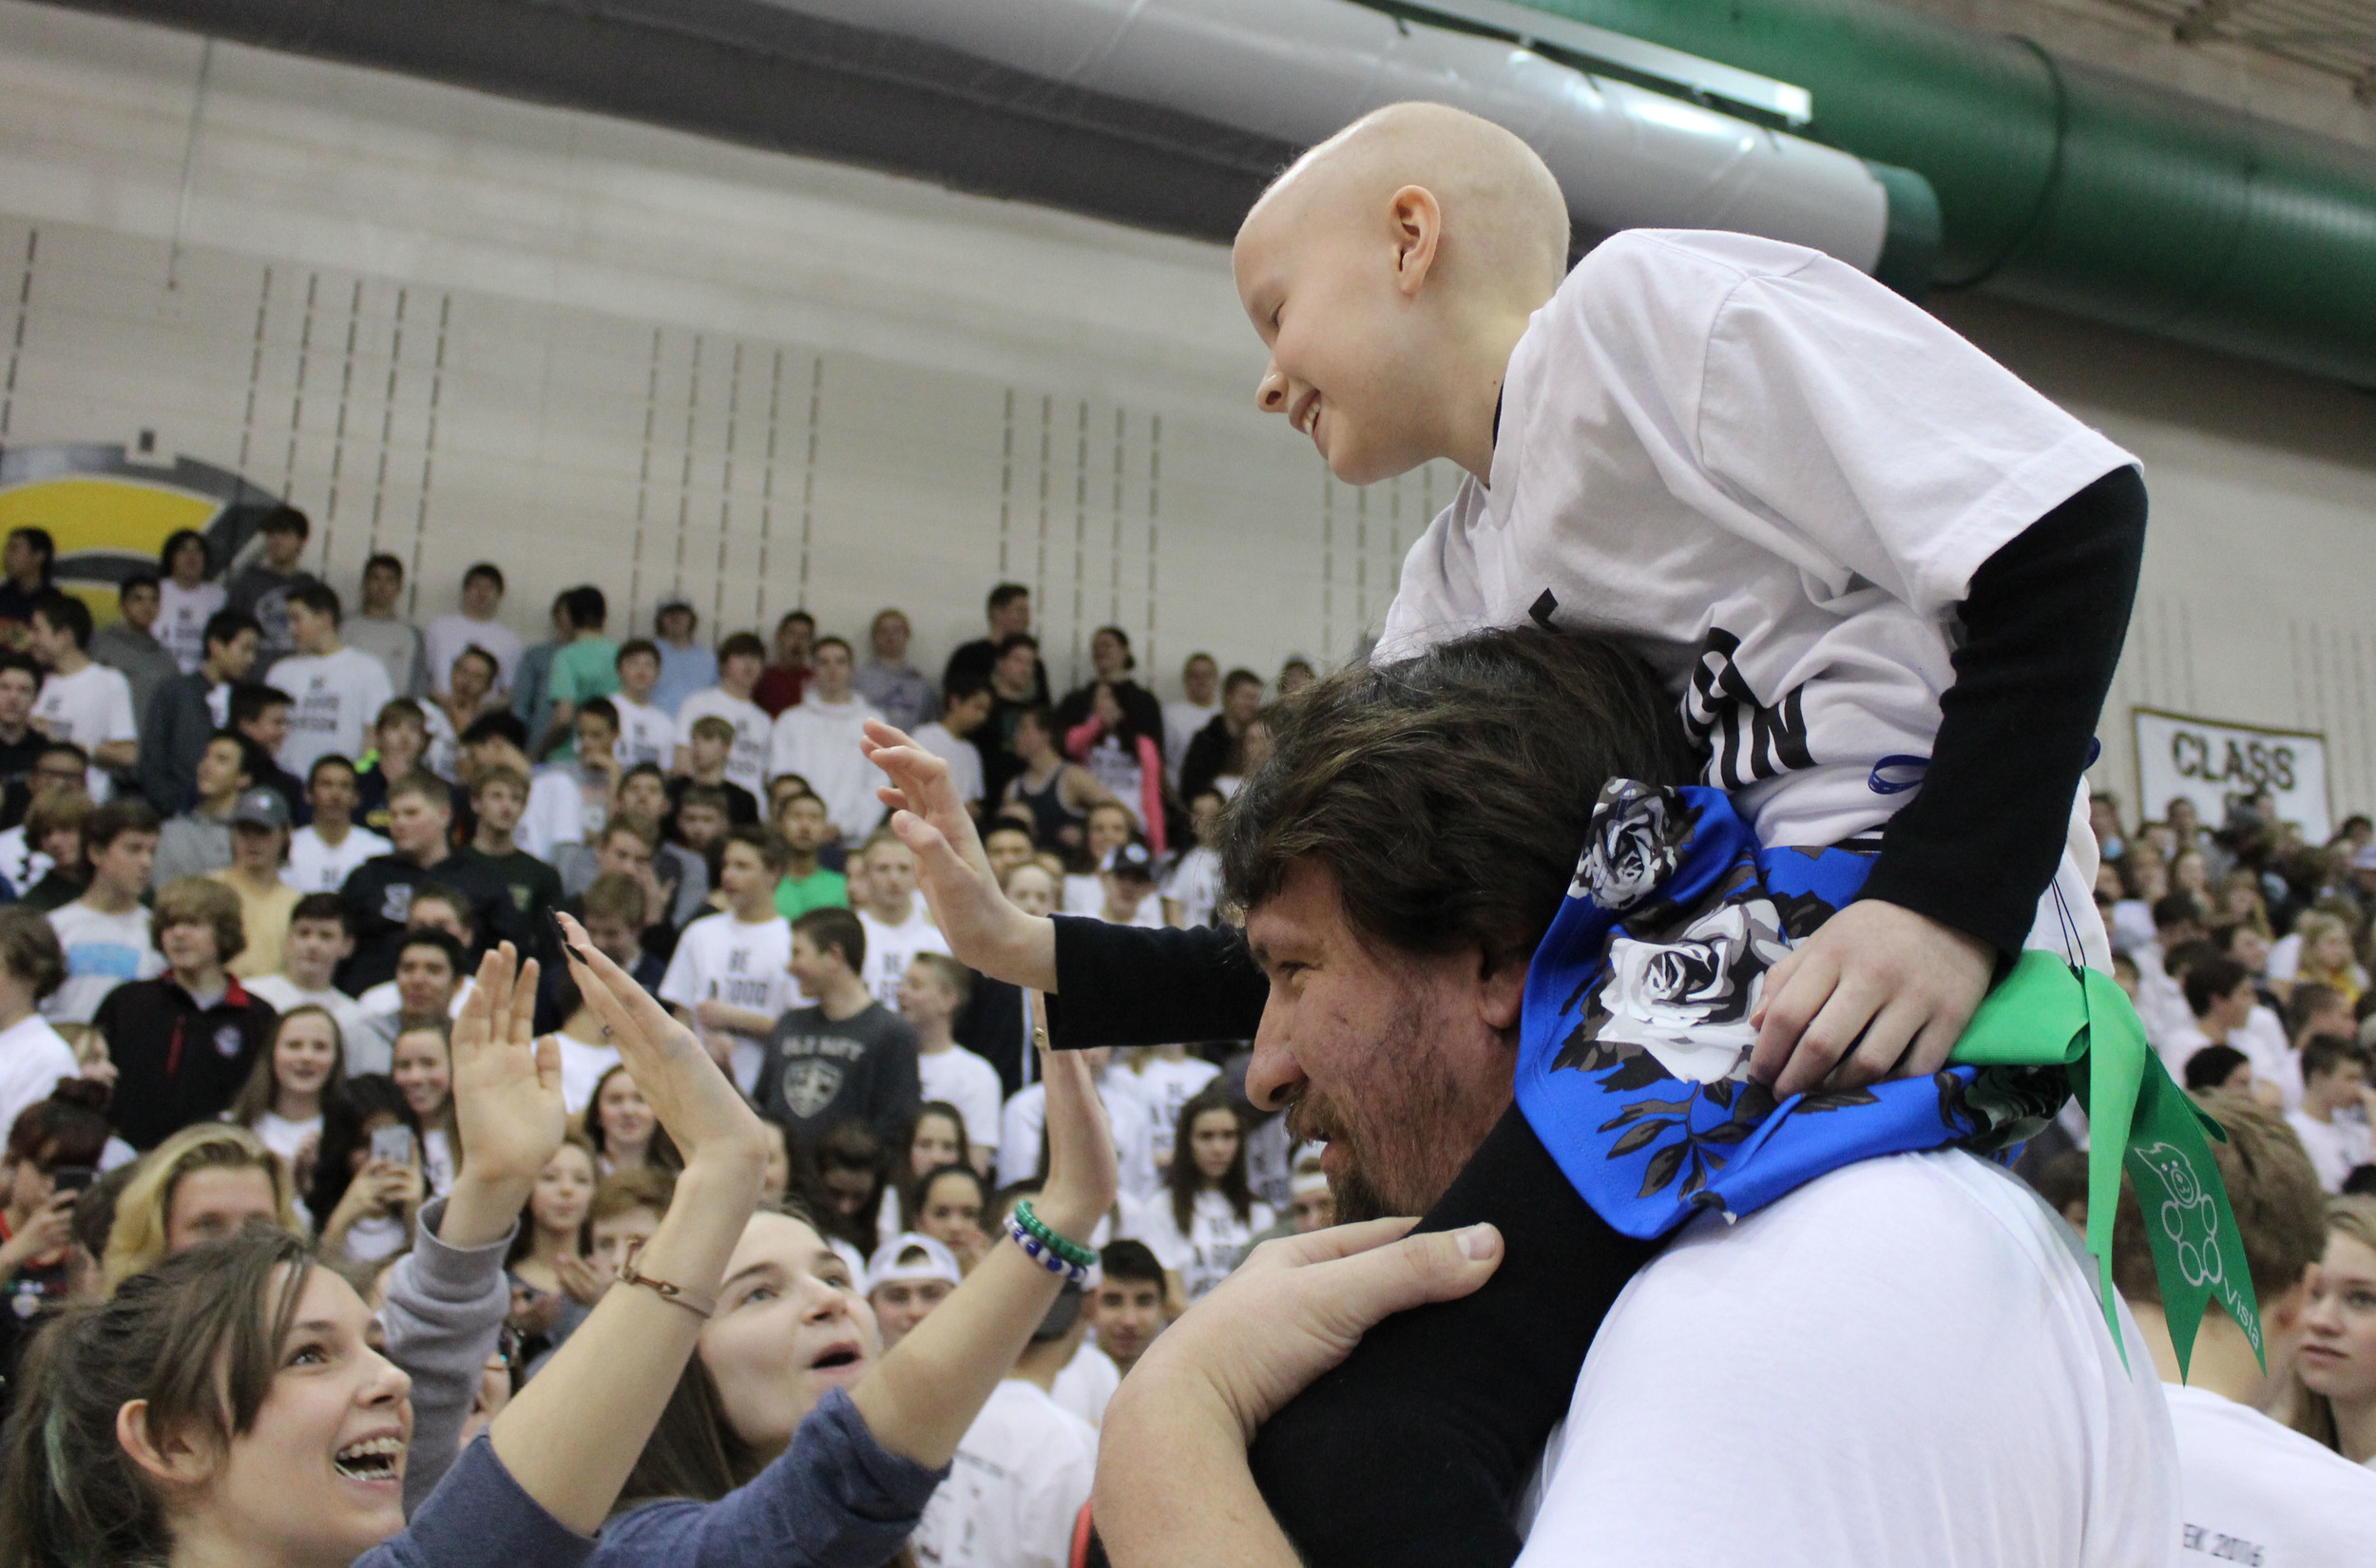 Marlee, the Wish Kid at Mountain Vista High School, rides around the main gym on math teacher Bob Wood's shoulders during the closing assembly. The assembly was the first time the majority of Mountain Vista students had actually seen the child that they raised nearly $100,000 for.